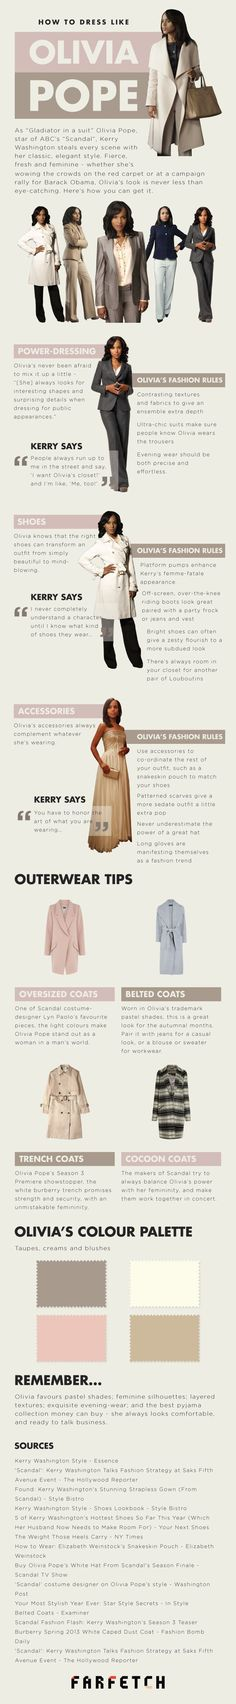 How to dress like Olivia Pope - can I just have her coat and jacket collection please? lol